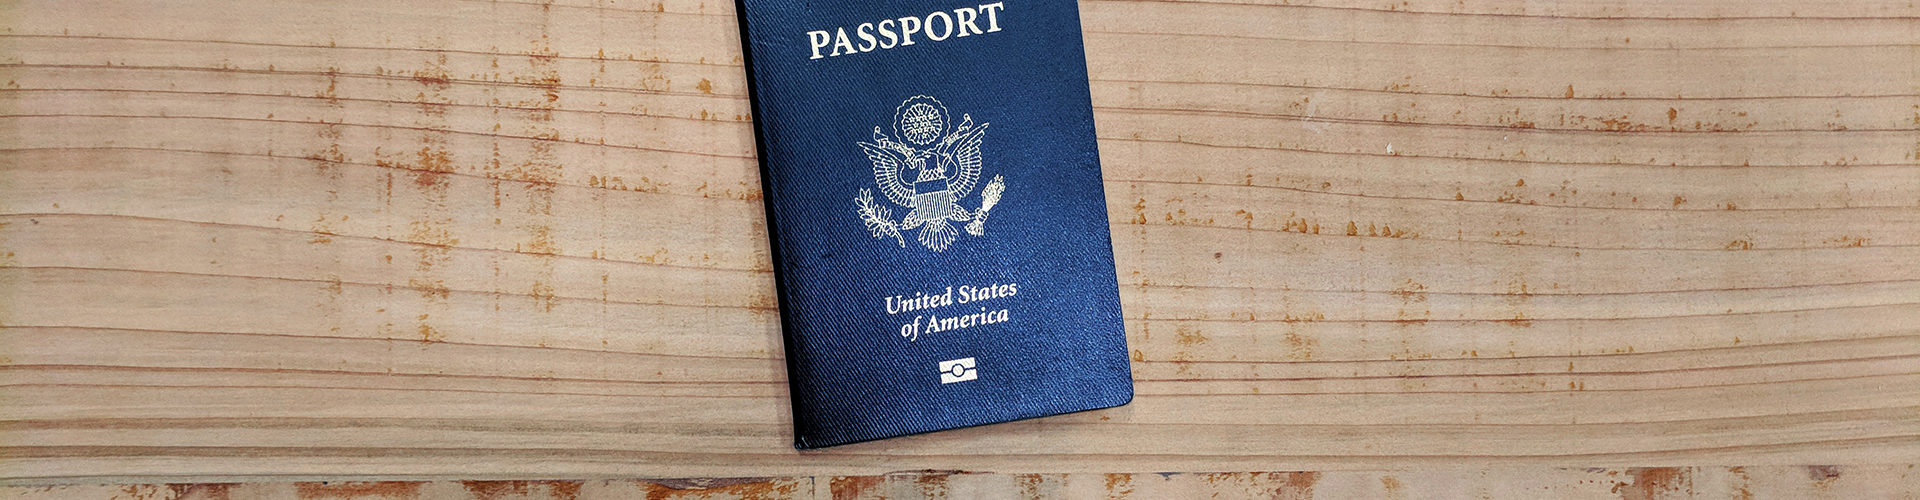 moving overseas travel documents